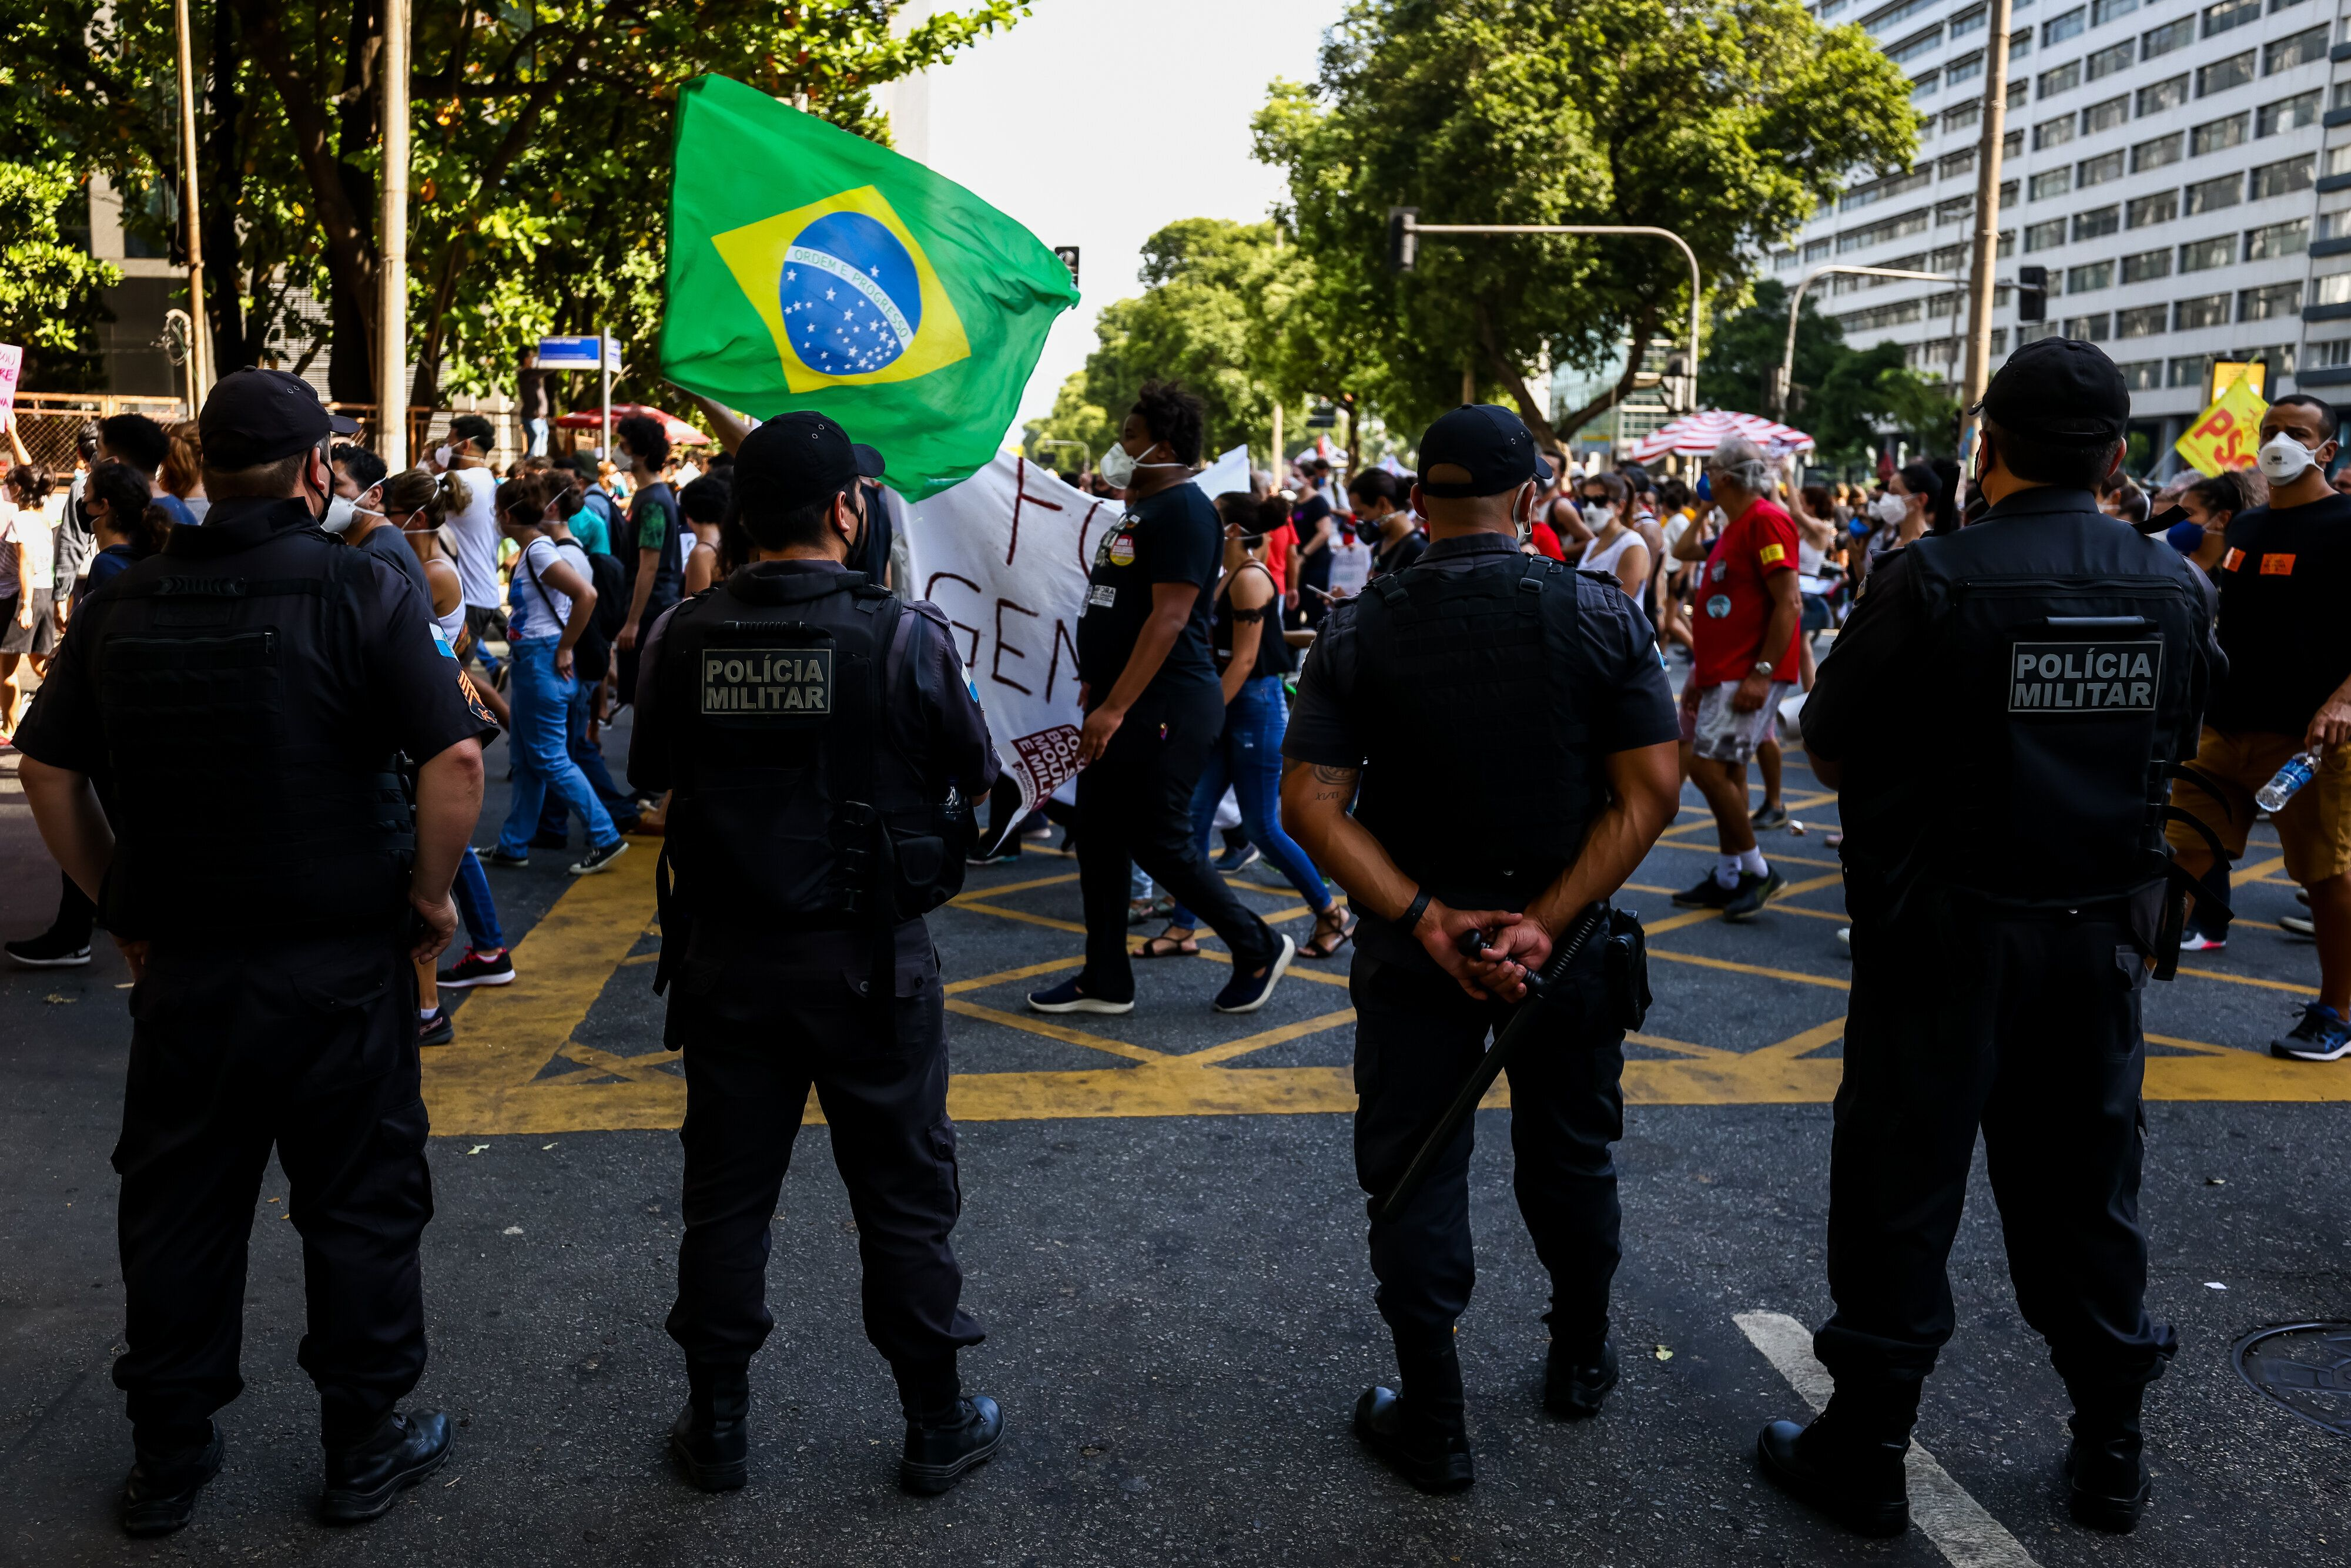 Rio de Janeiro police officers monitor a demonstration against Bolsonaro's handling of the COVID-19 pandemic. Brazil's police